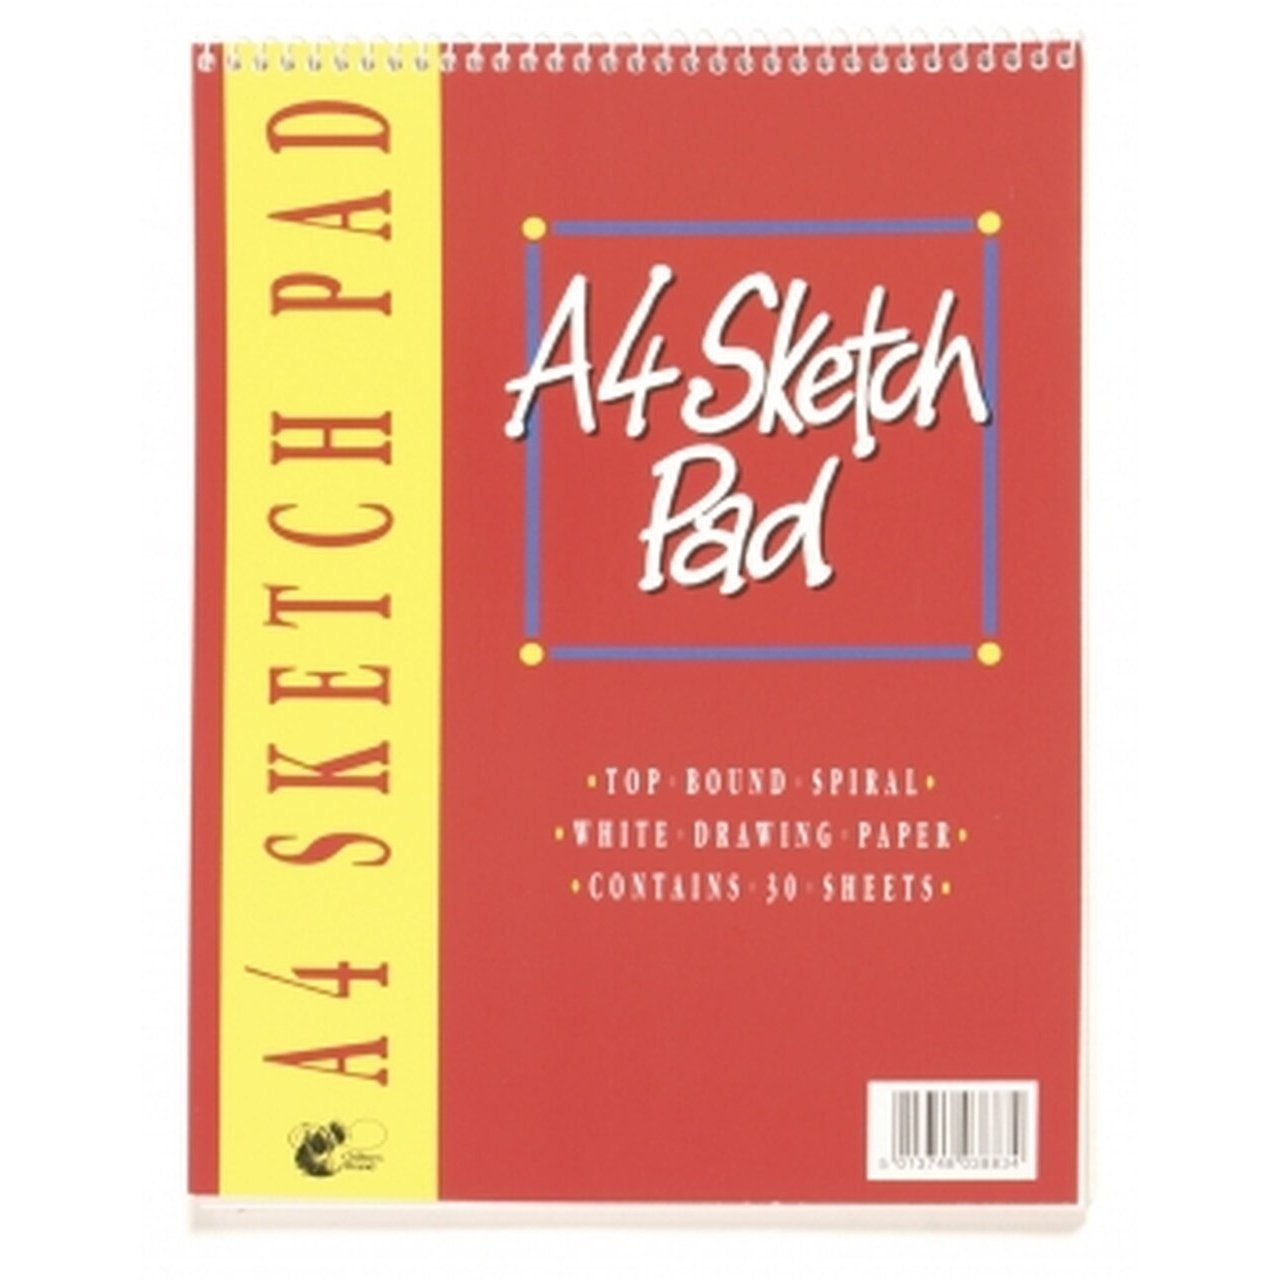 A4 Sketch Pad (30 Sheets)